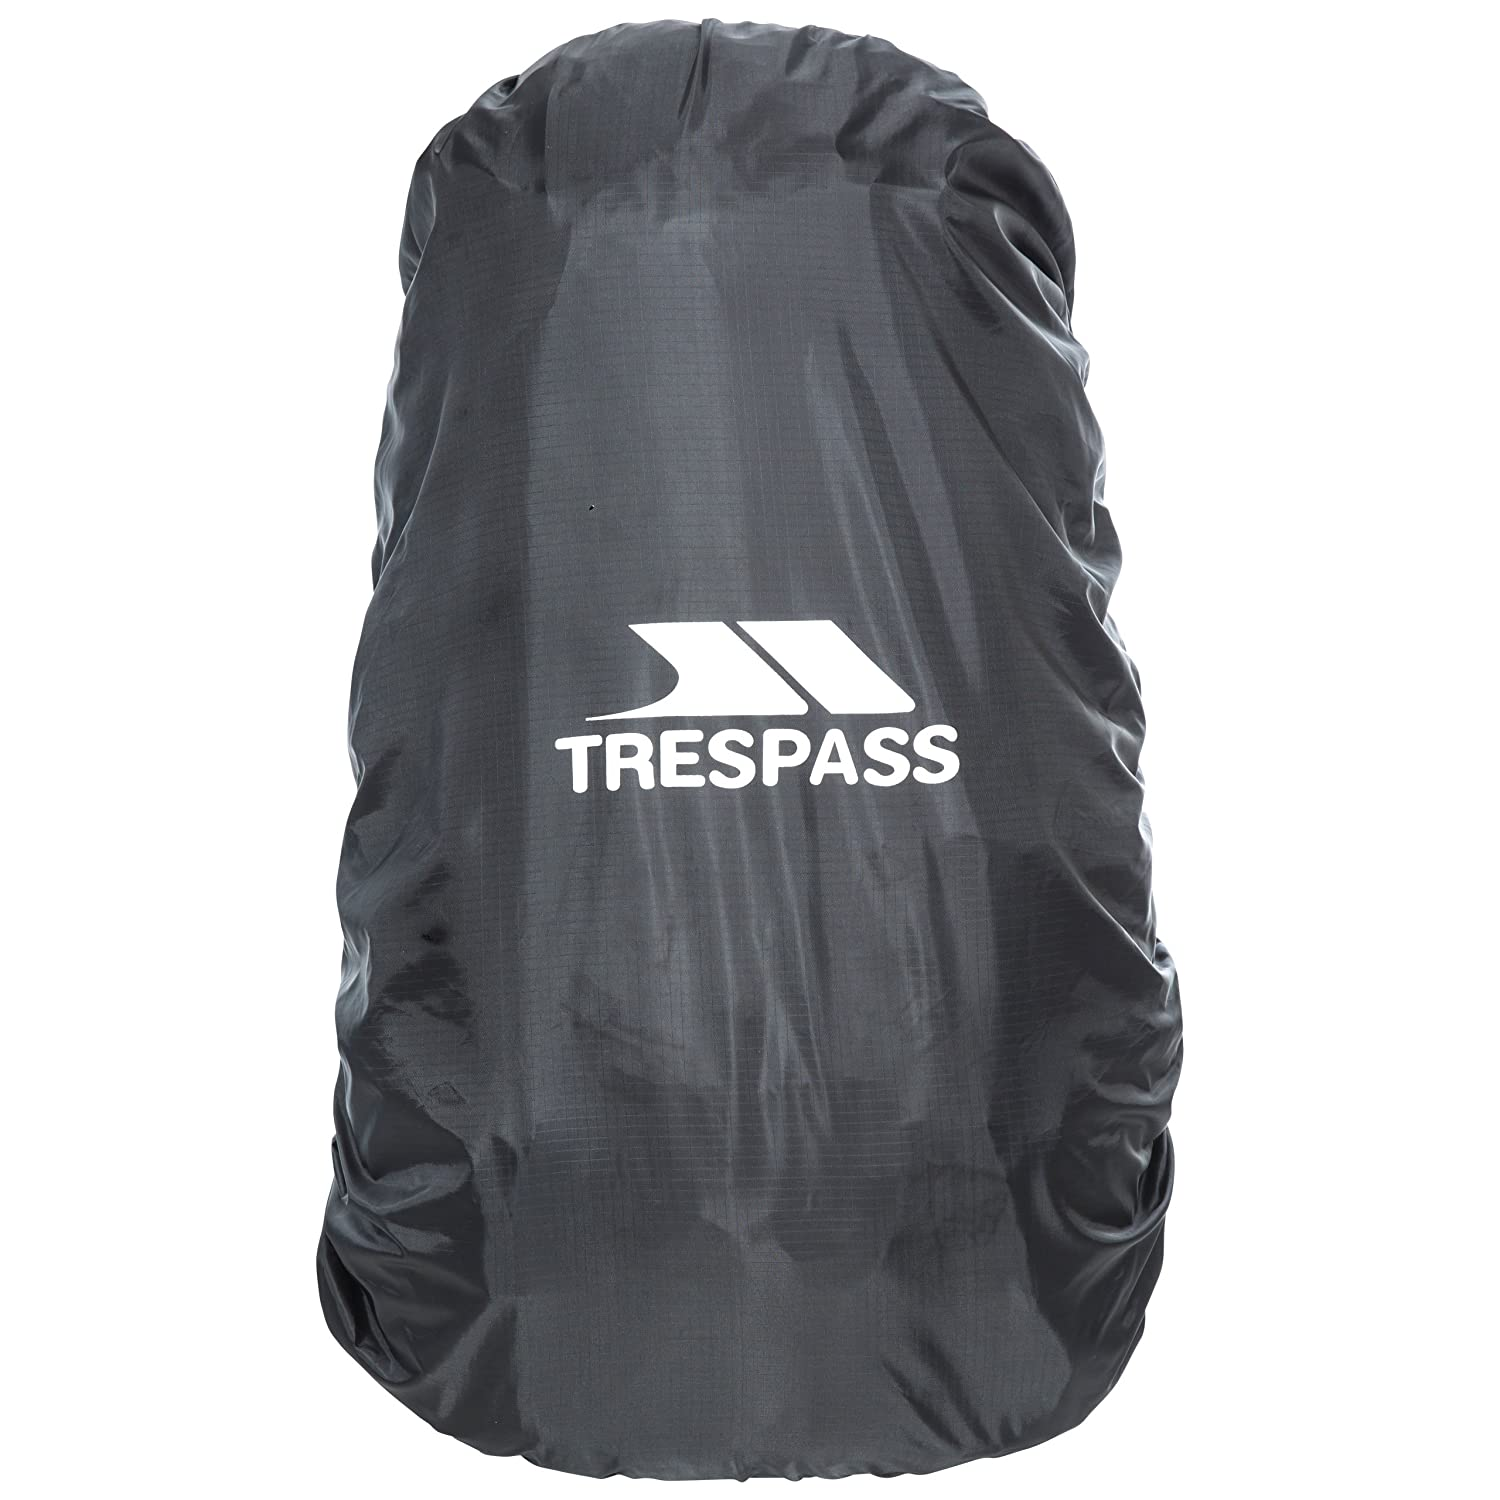 Trespass Waterproof Rain Cover for Backpacks